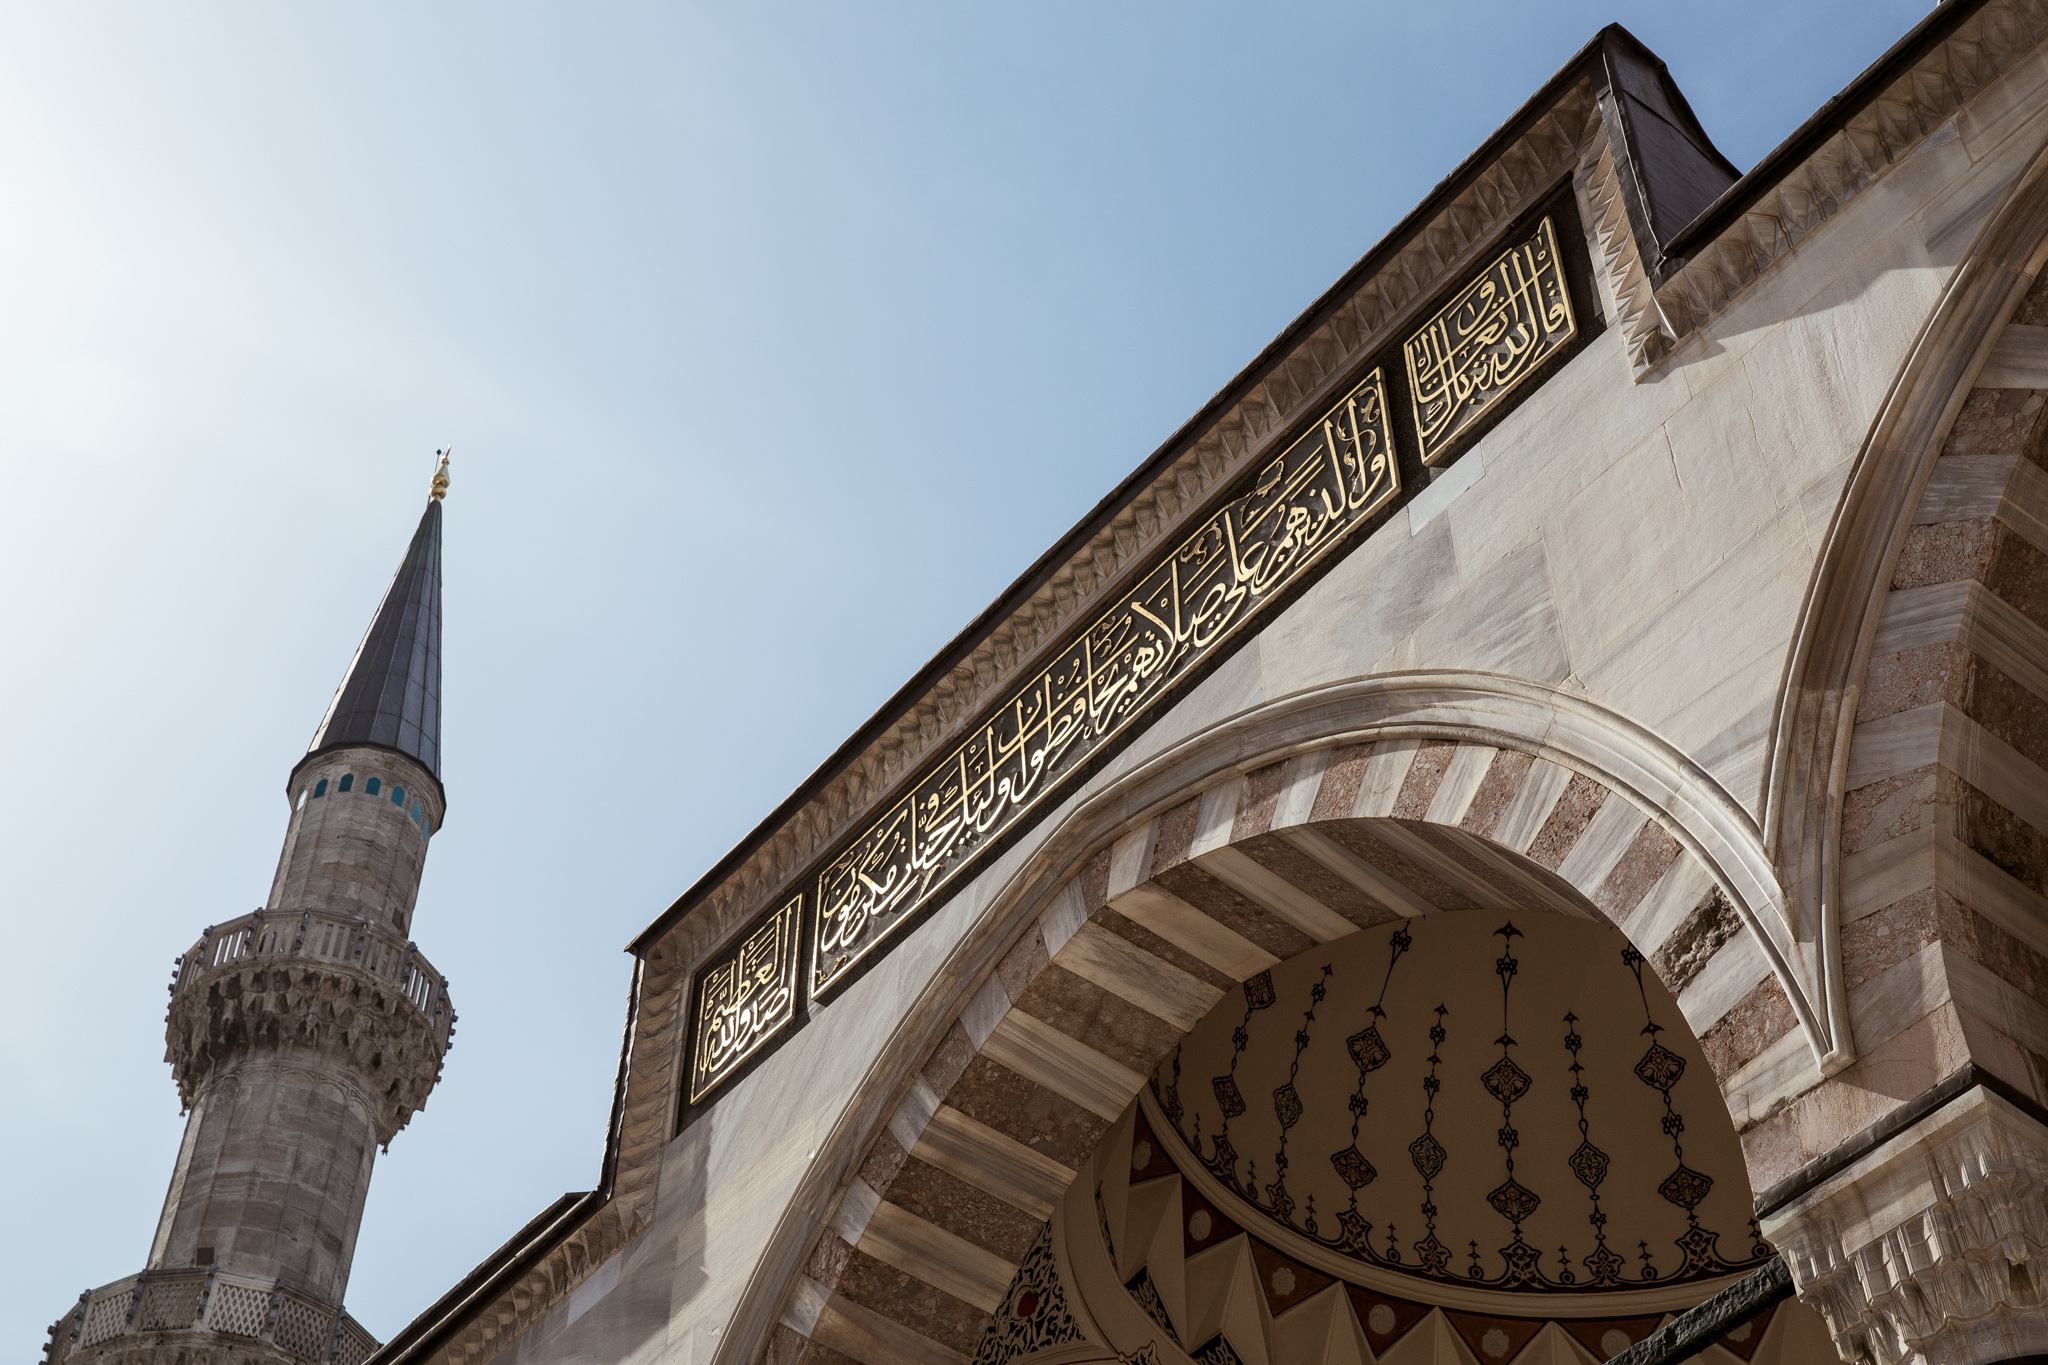 istanbul_suleymaniye-mosque-1177-writing-on-entrance-gate-inside-courtyard.jpg